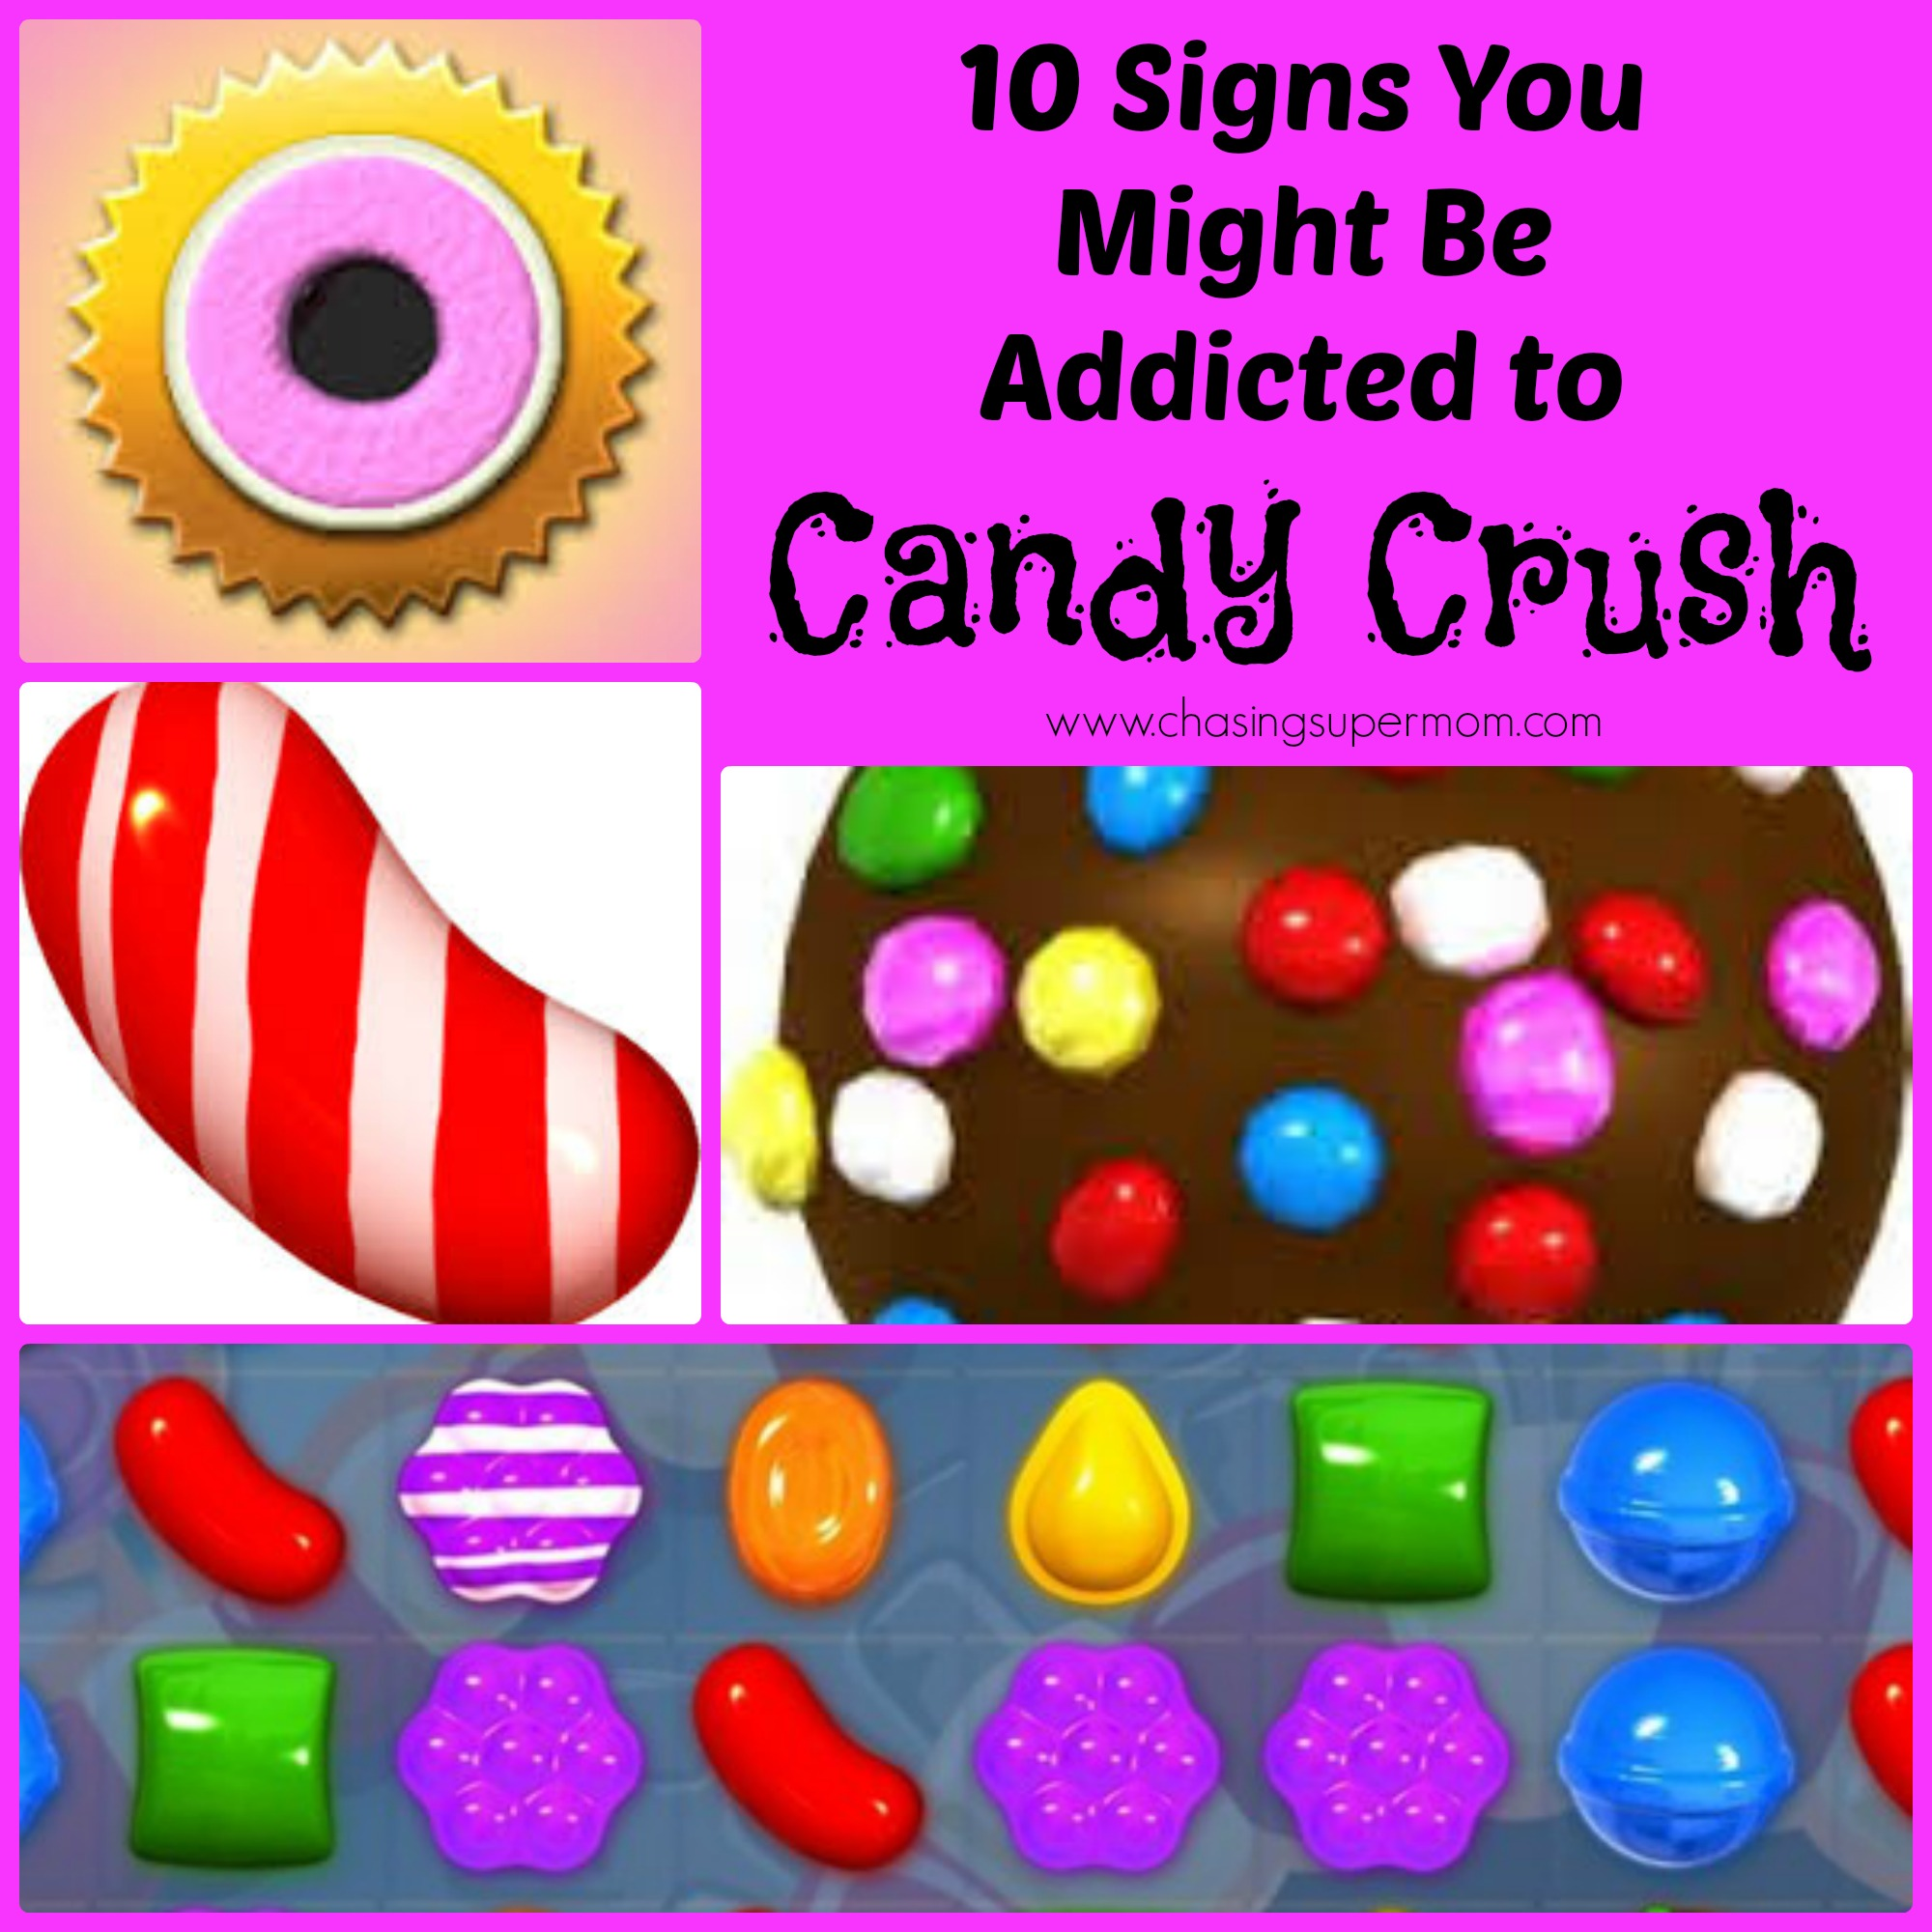 10 Signs You Might Be Addicted to Candy Crush